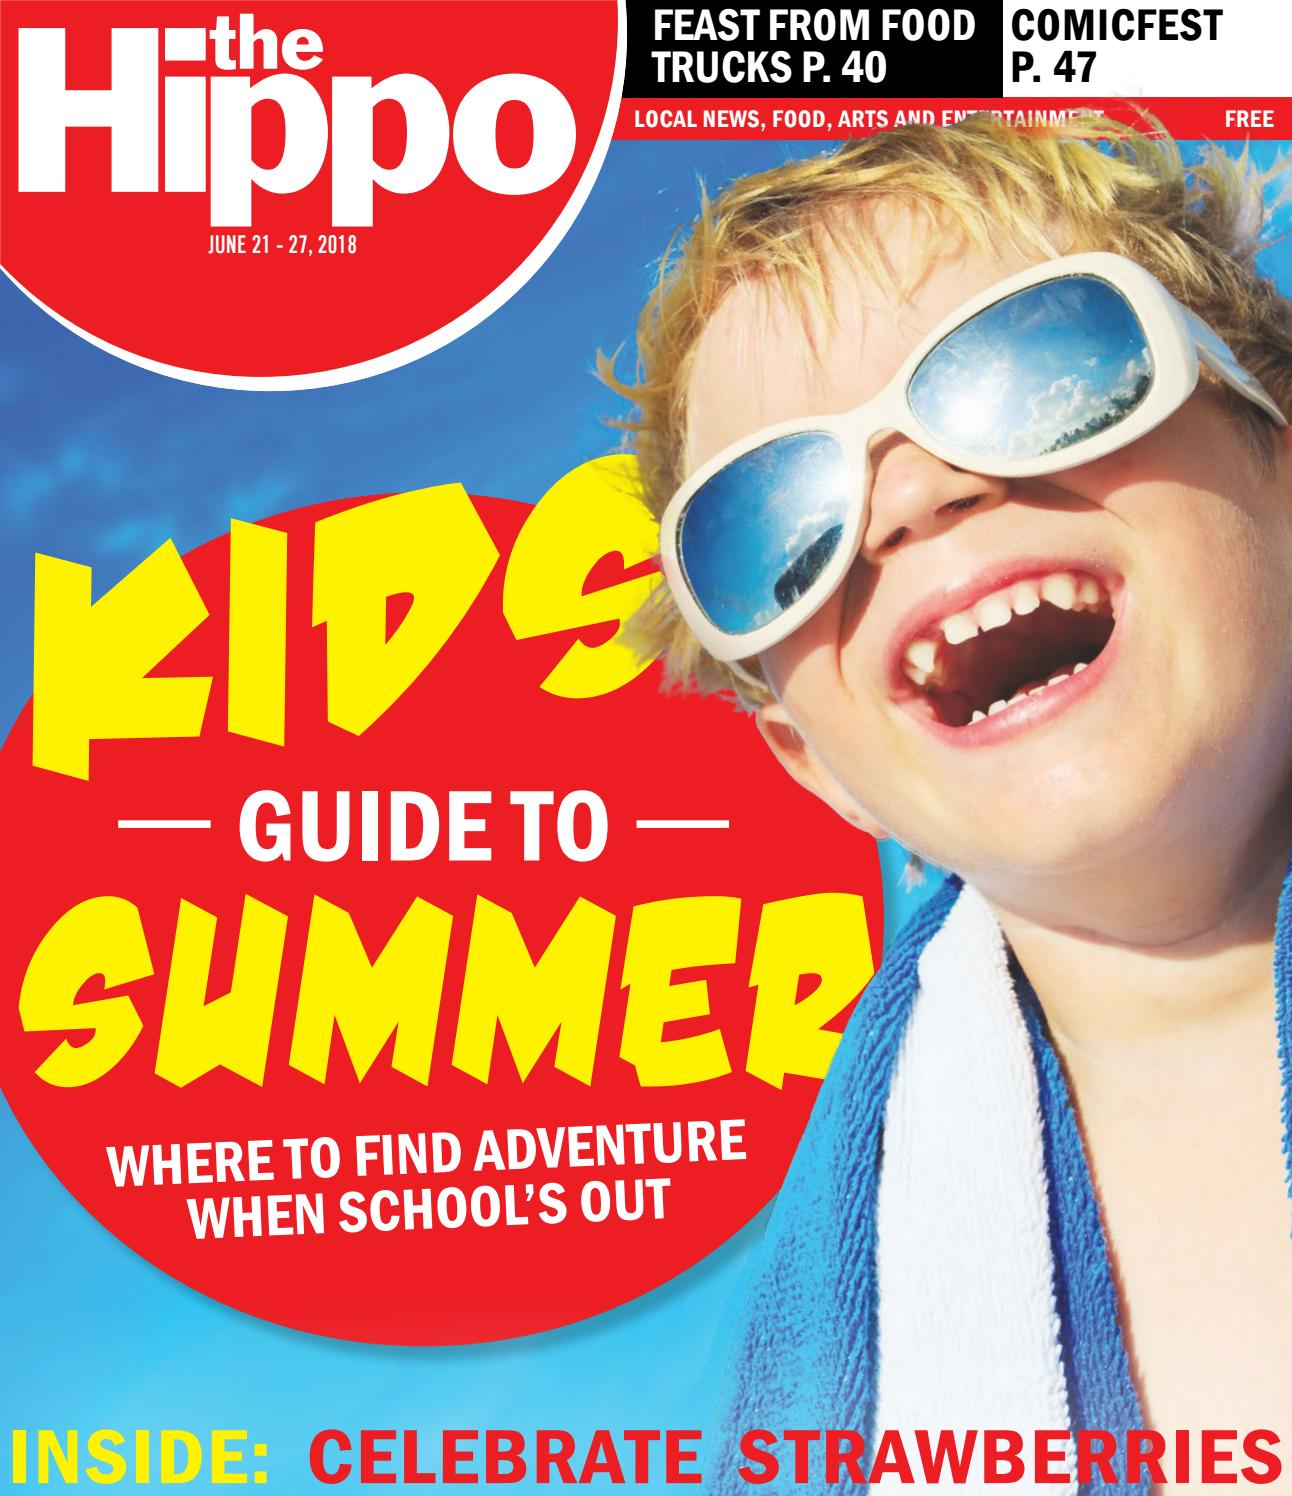 a58efd583d6 Hippo 6-21-18 by The Hippo - issuu